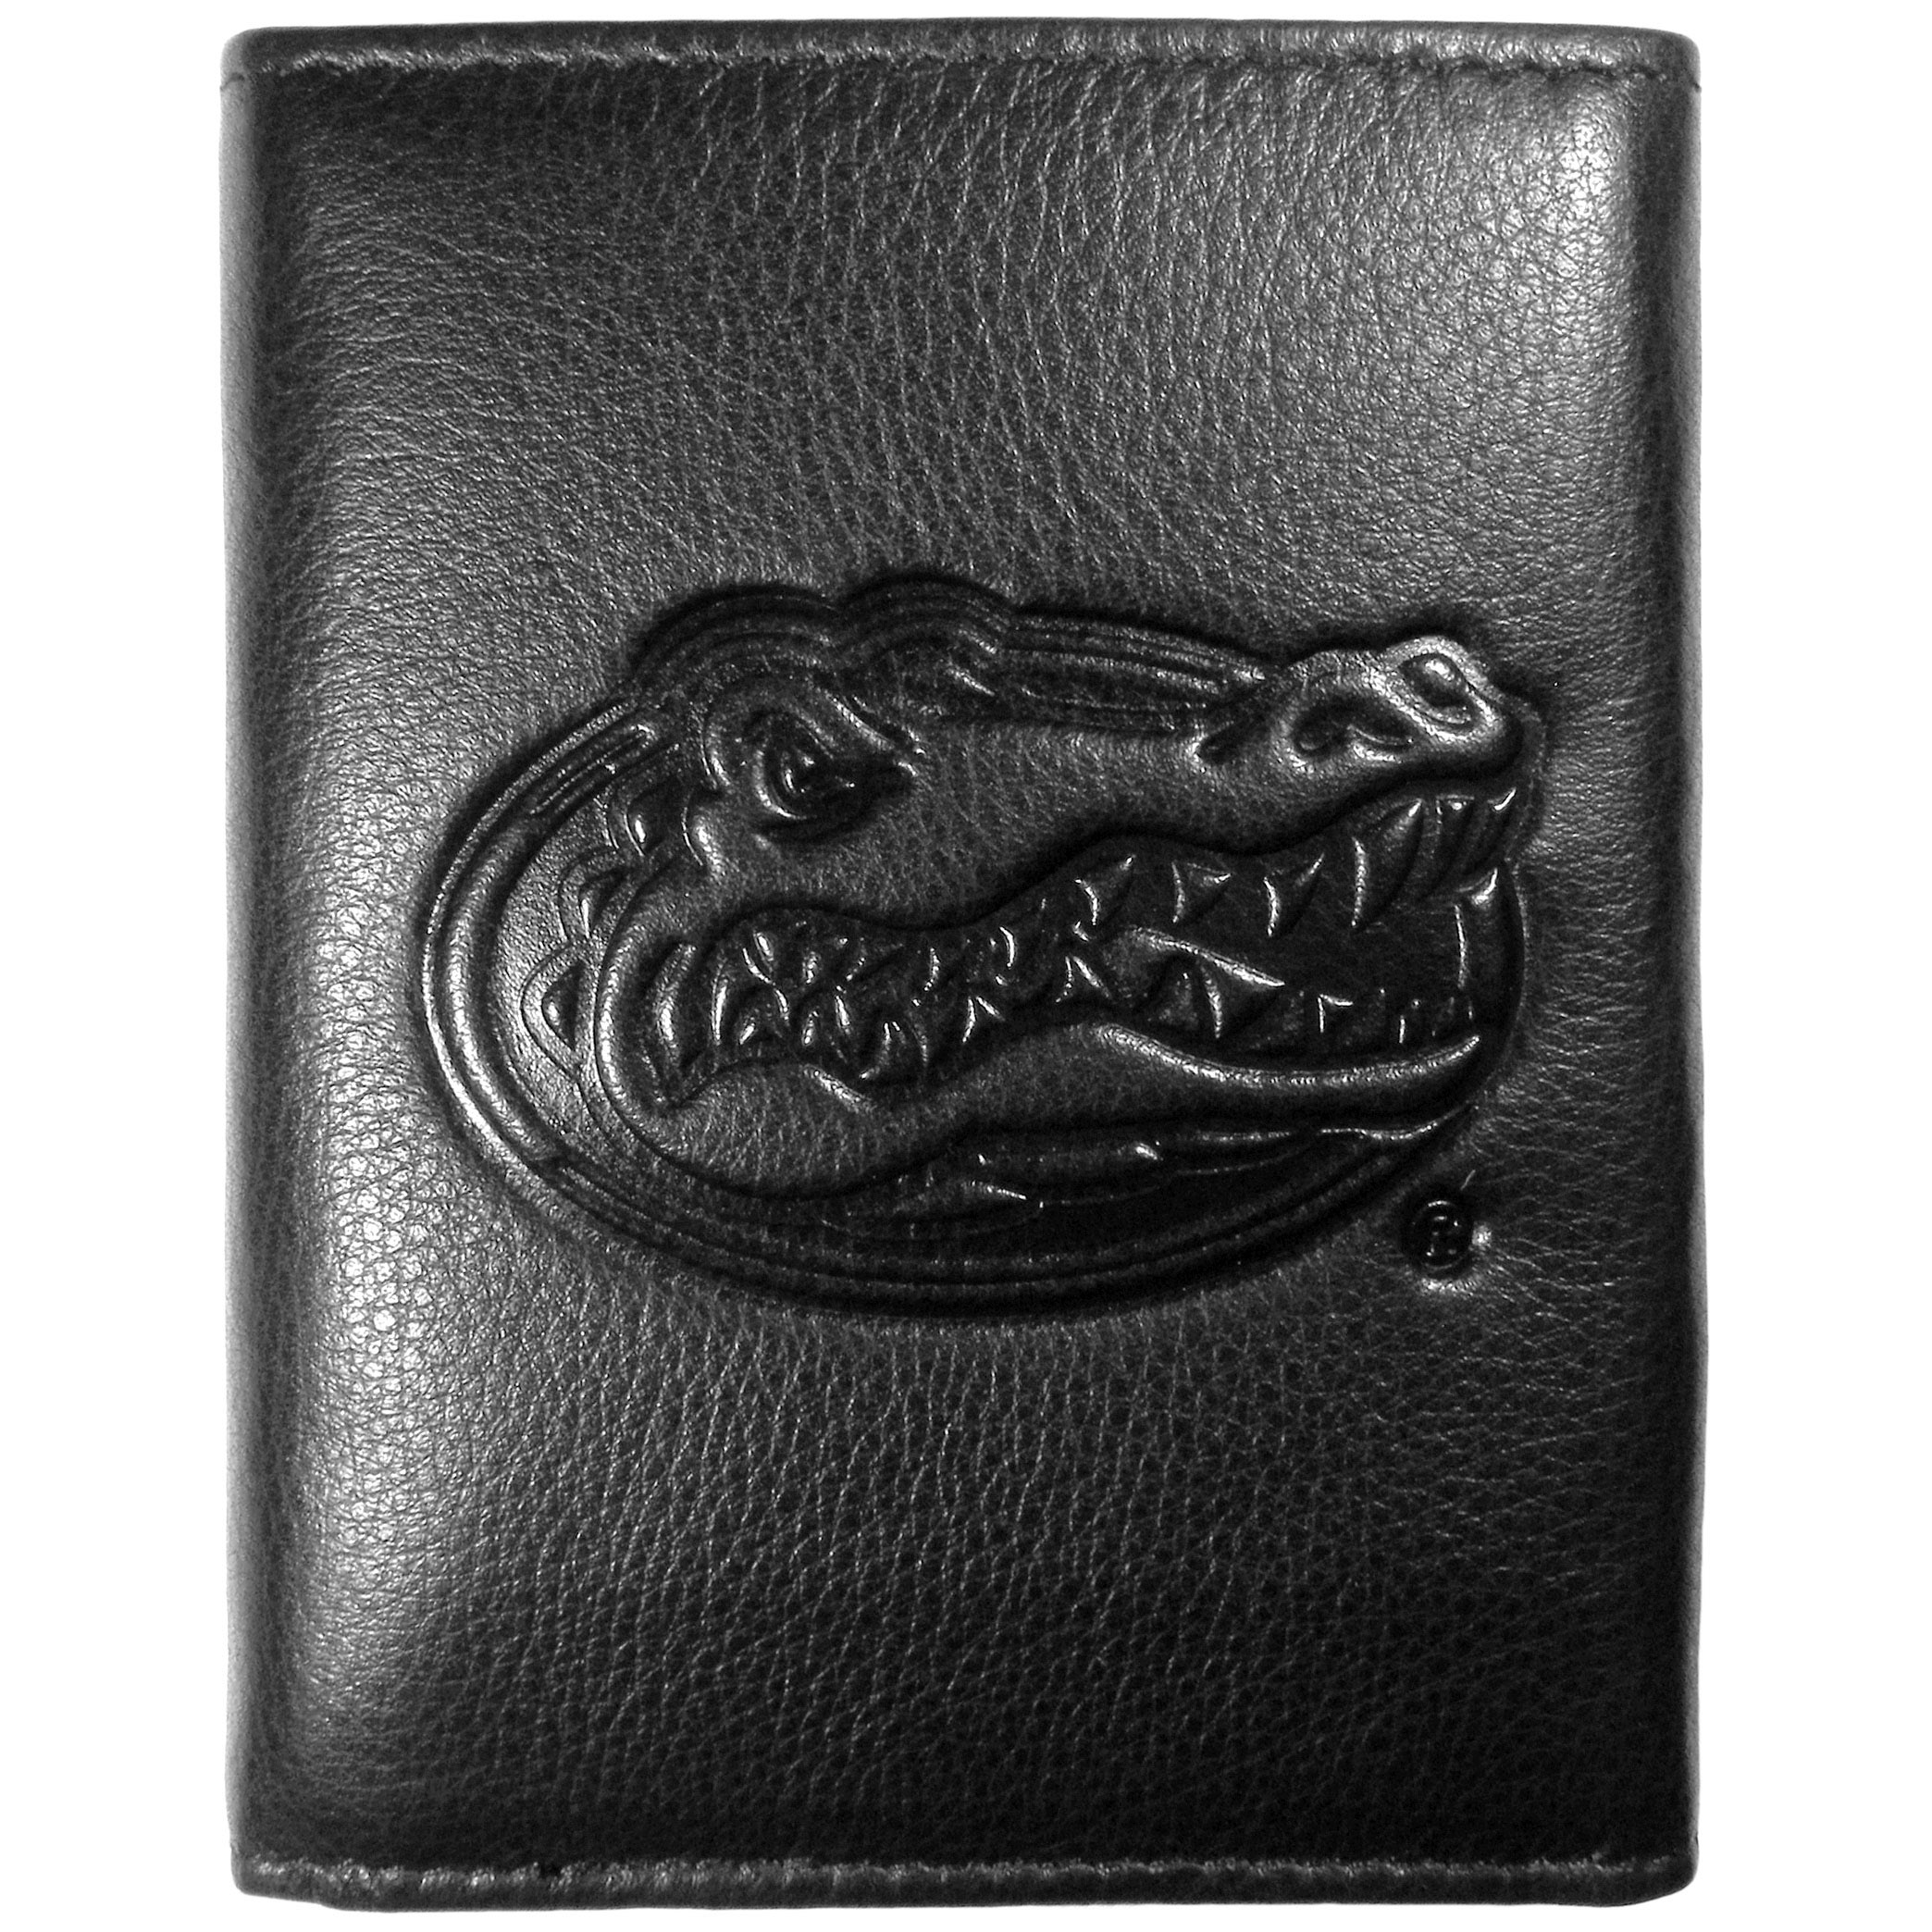 Florida Gators Embossed Leather Tri-fold Wallet - This stylish leather wallet is made of high quality leather with a supple feel and classic look. The front of the tri-fold style wallet has a deeply embossed Florida Gators logo. The billfold is packed with features that will allow to keep organized, lots of credit card slots, windowed ID slot, large pockets for bills and a removable sleeve with extra slots for even more storage. This is a must-have men's fashion accessory that would make any fan very proud to own.